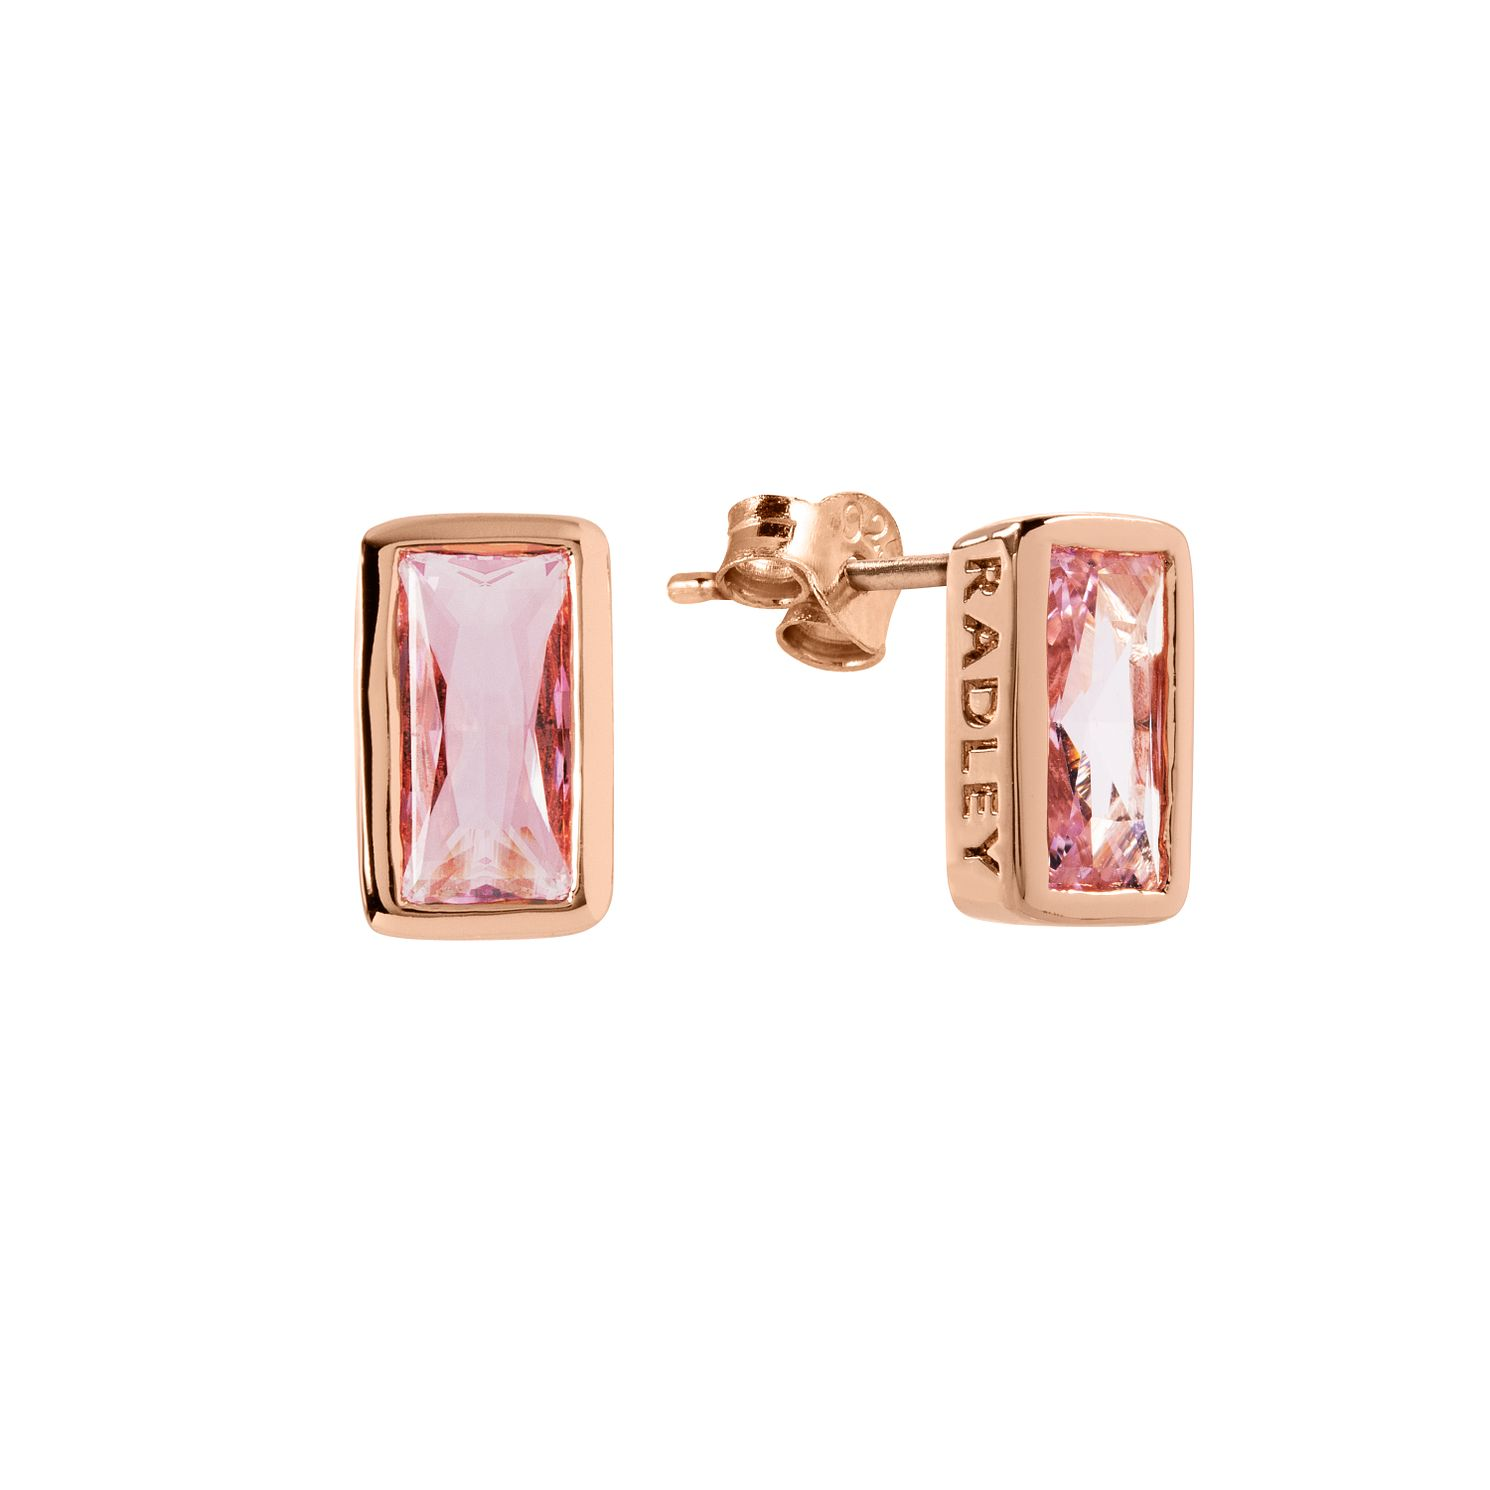 Radley 18ct Rose Gold Tone Purple Baguette Crystal Earrings - Product number 6088759